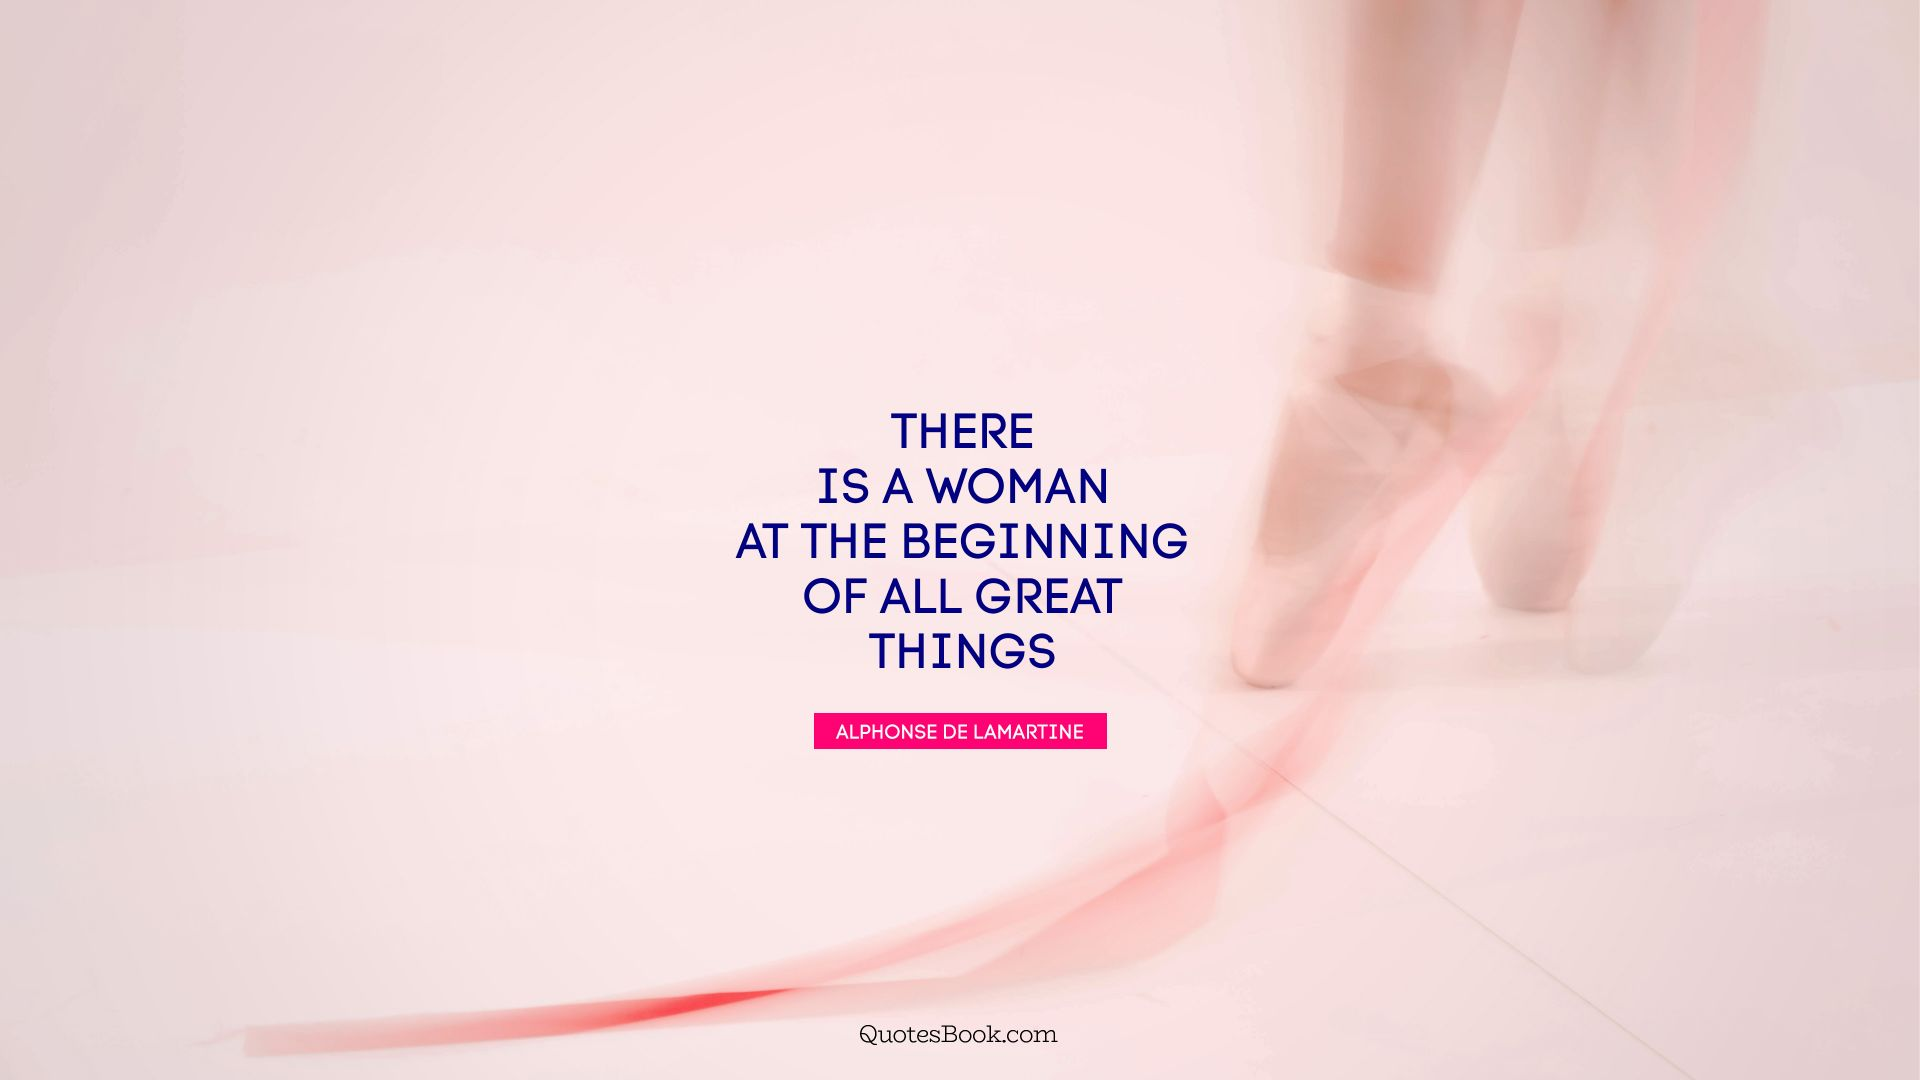 There is a woman at the beginning of all great things. - Quote by Alphonse de Lamartine